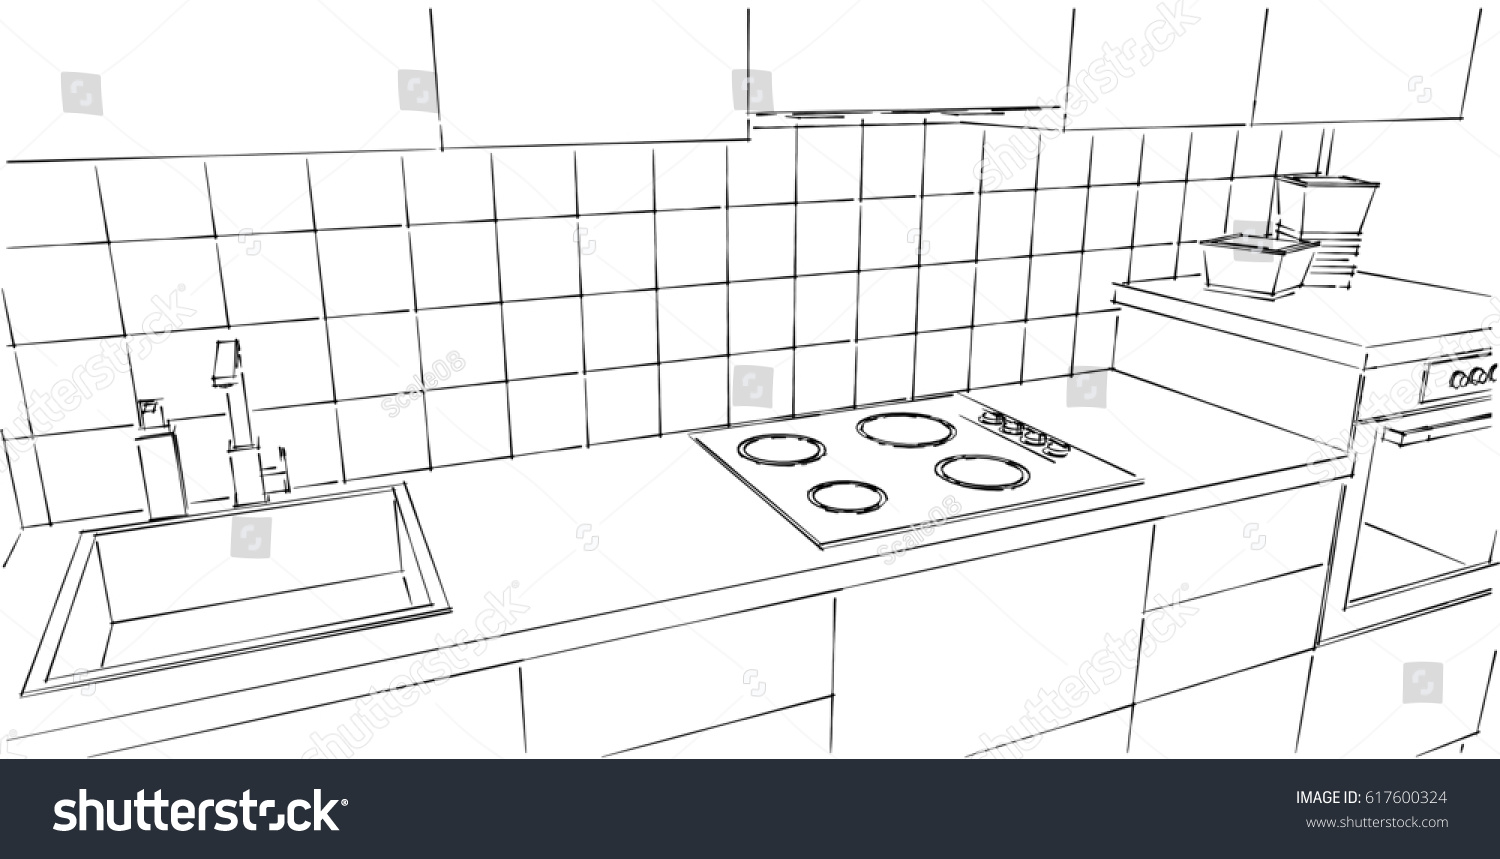 kitchen counter close up. Kitchen Counter Close Up. Black And White Line Drawing, Top Perspective View. Up